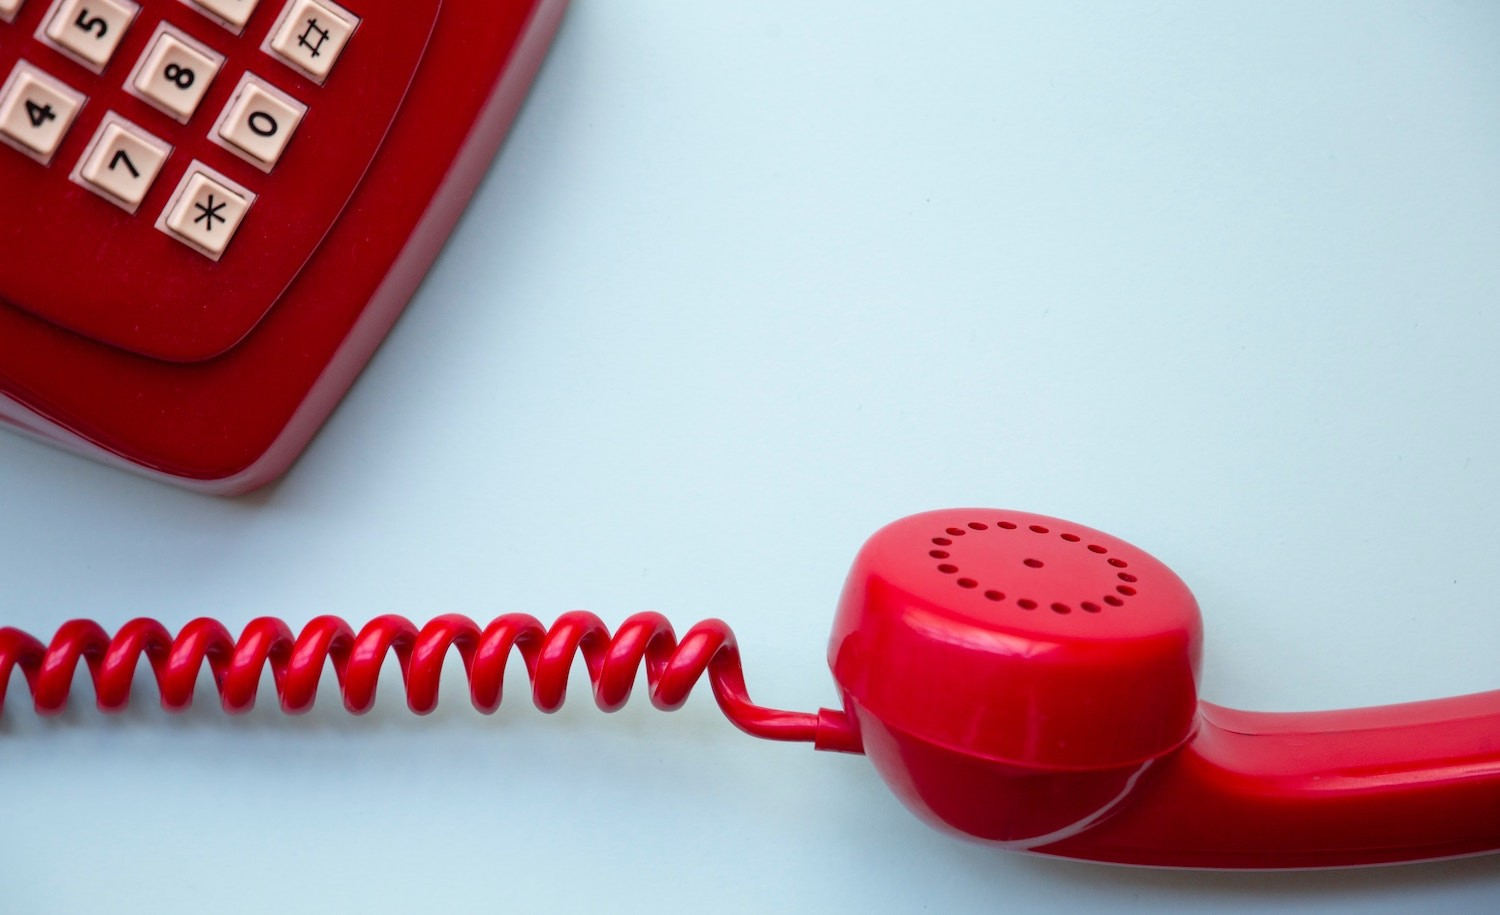 Telephonophobia Is the Intense Fear of Talking on the Phone, and It's Real